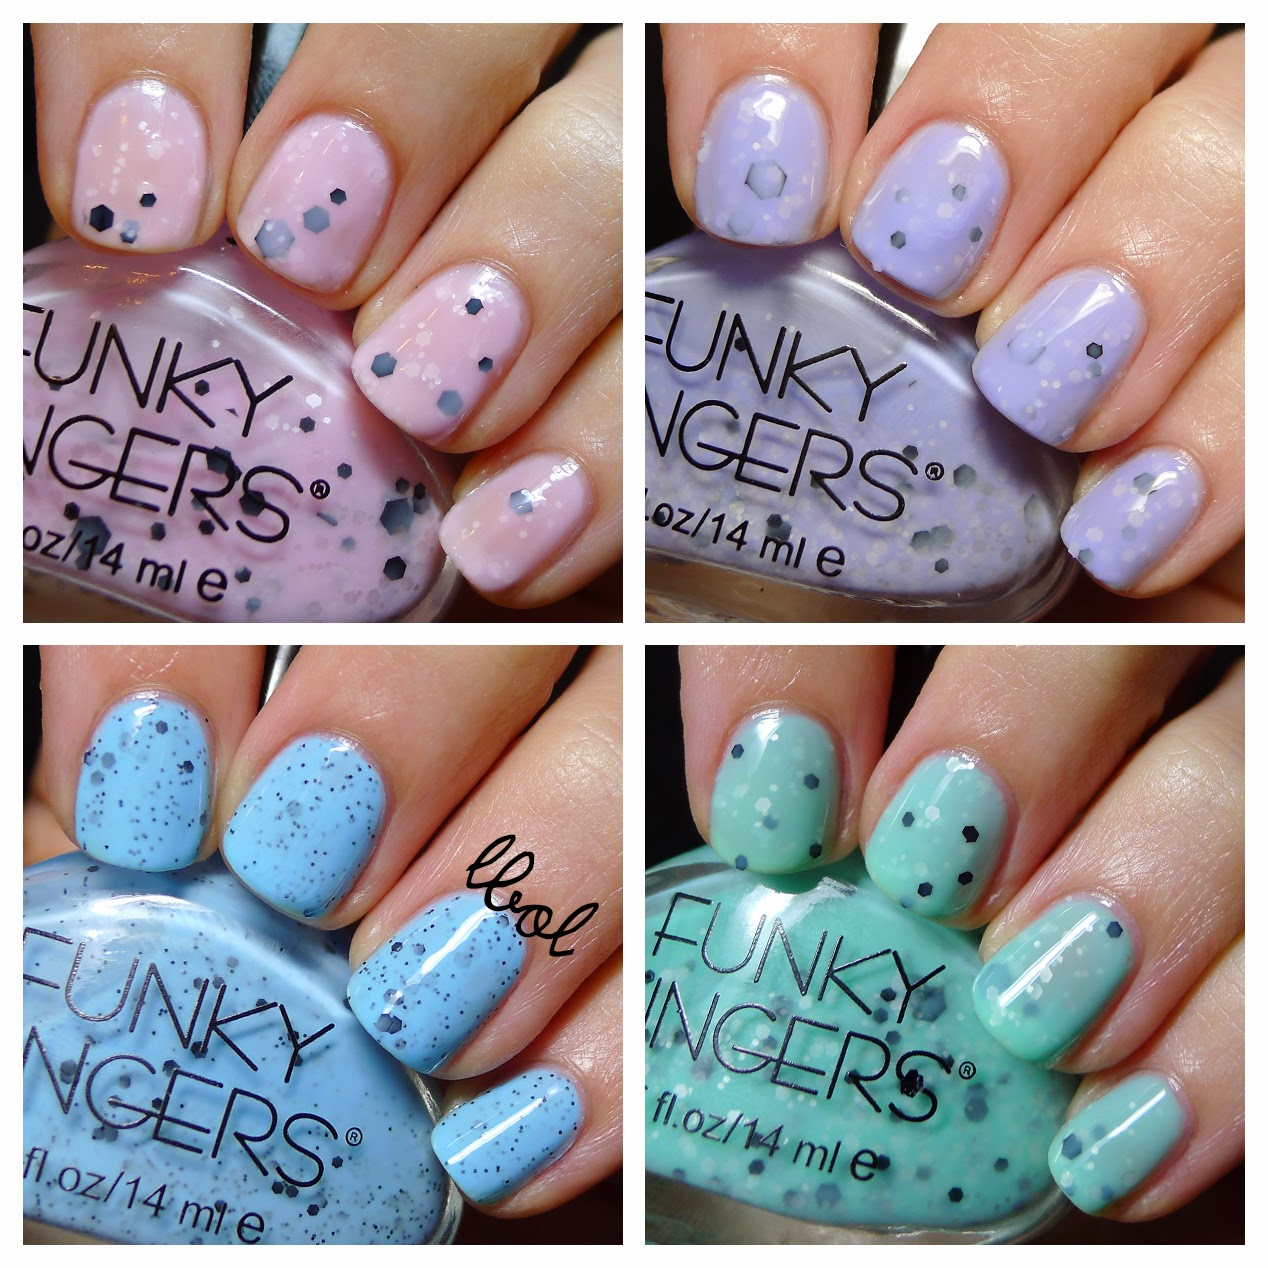 Funky Fingers - Berried Treasure, Fro Yo, Puffo Gelato and Mint Choco-Chip